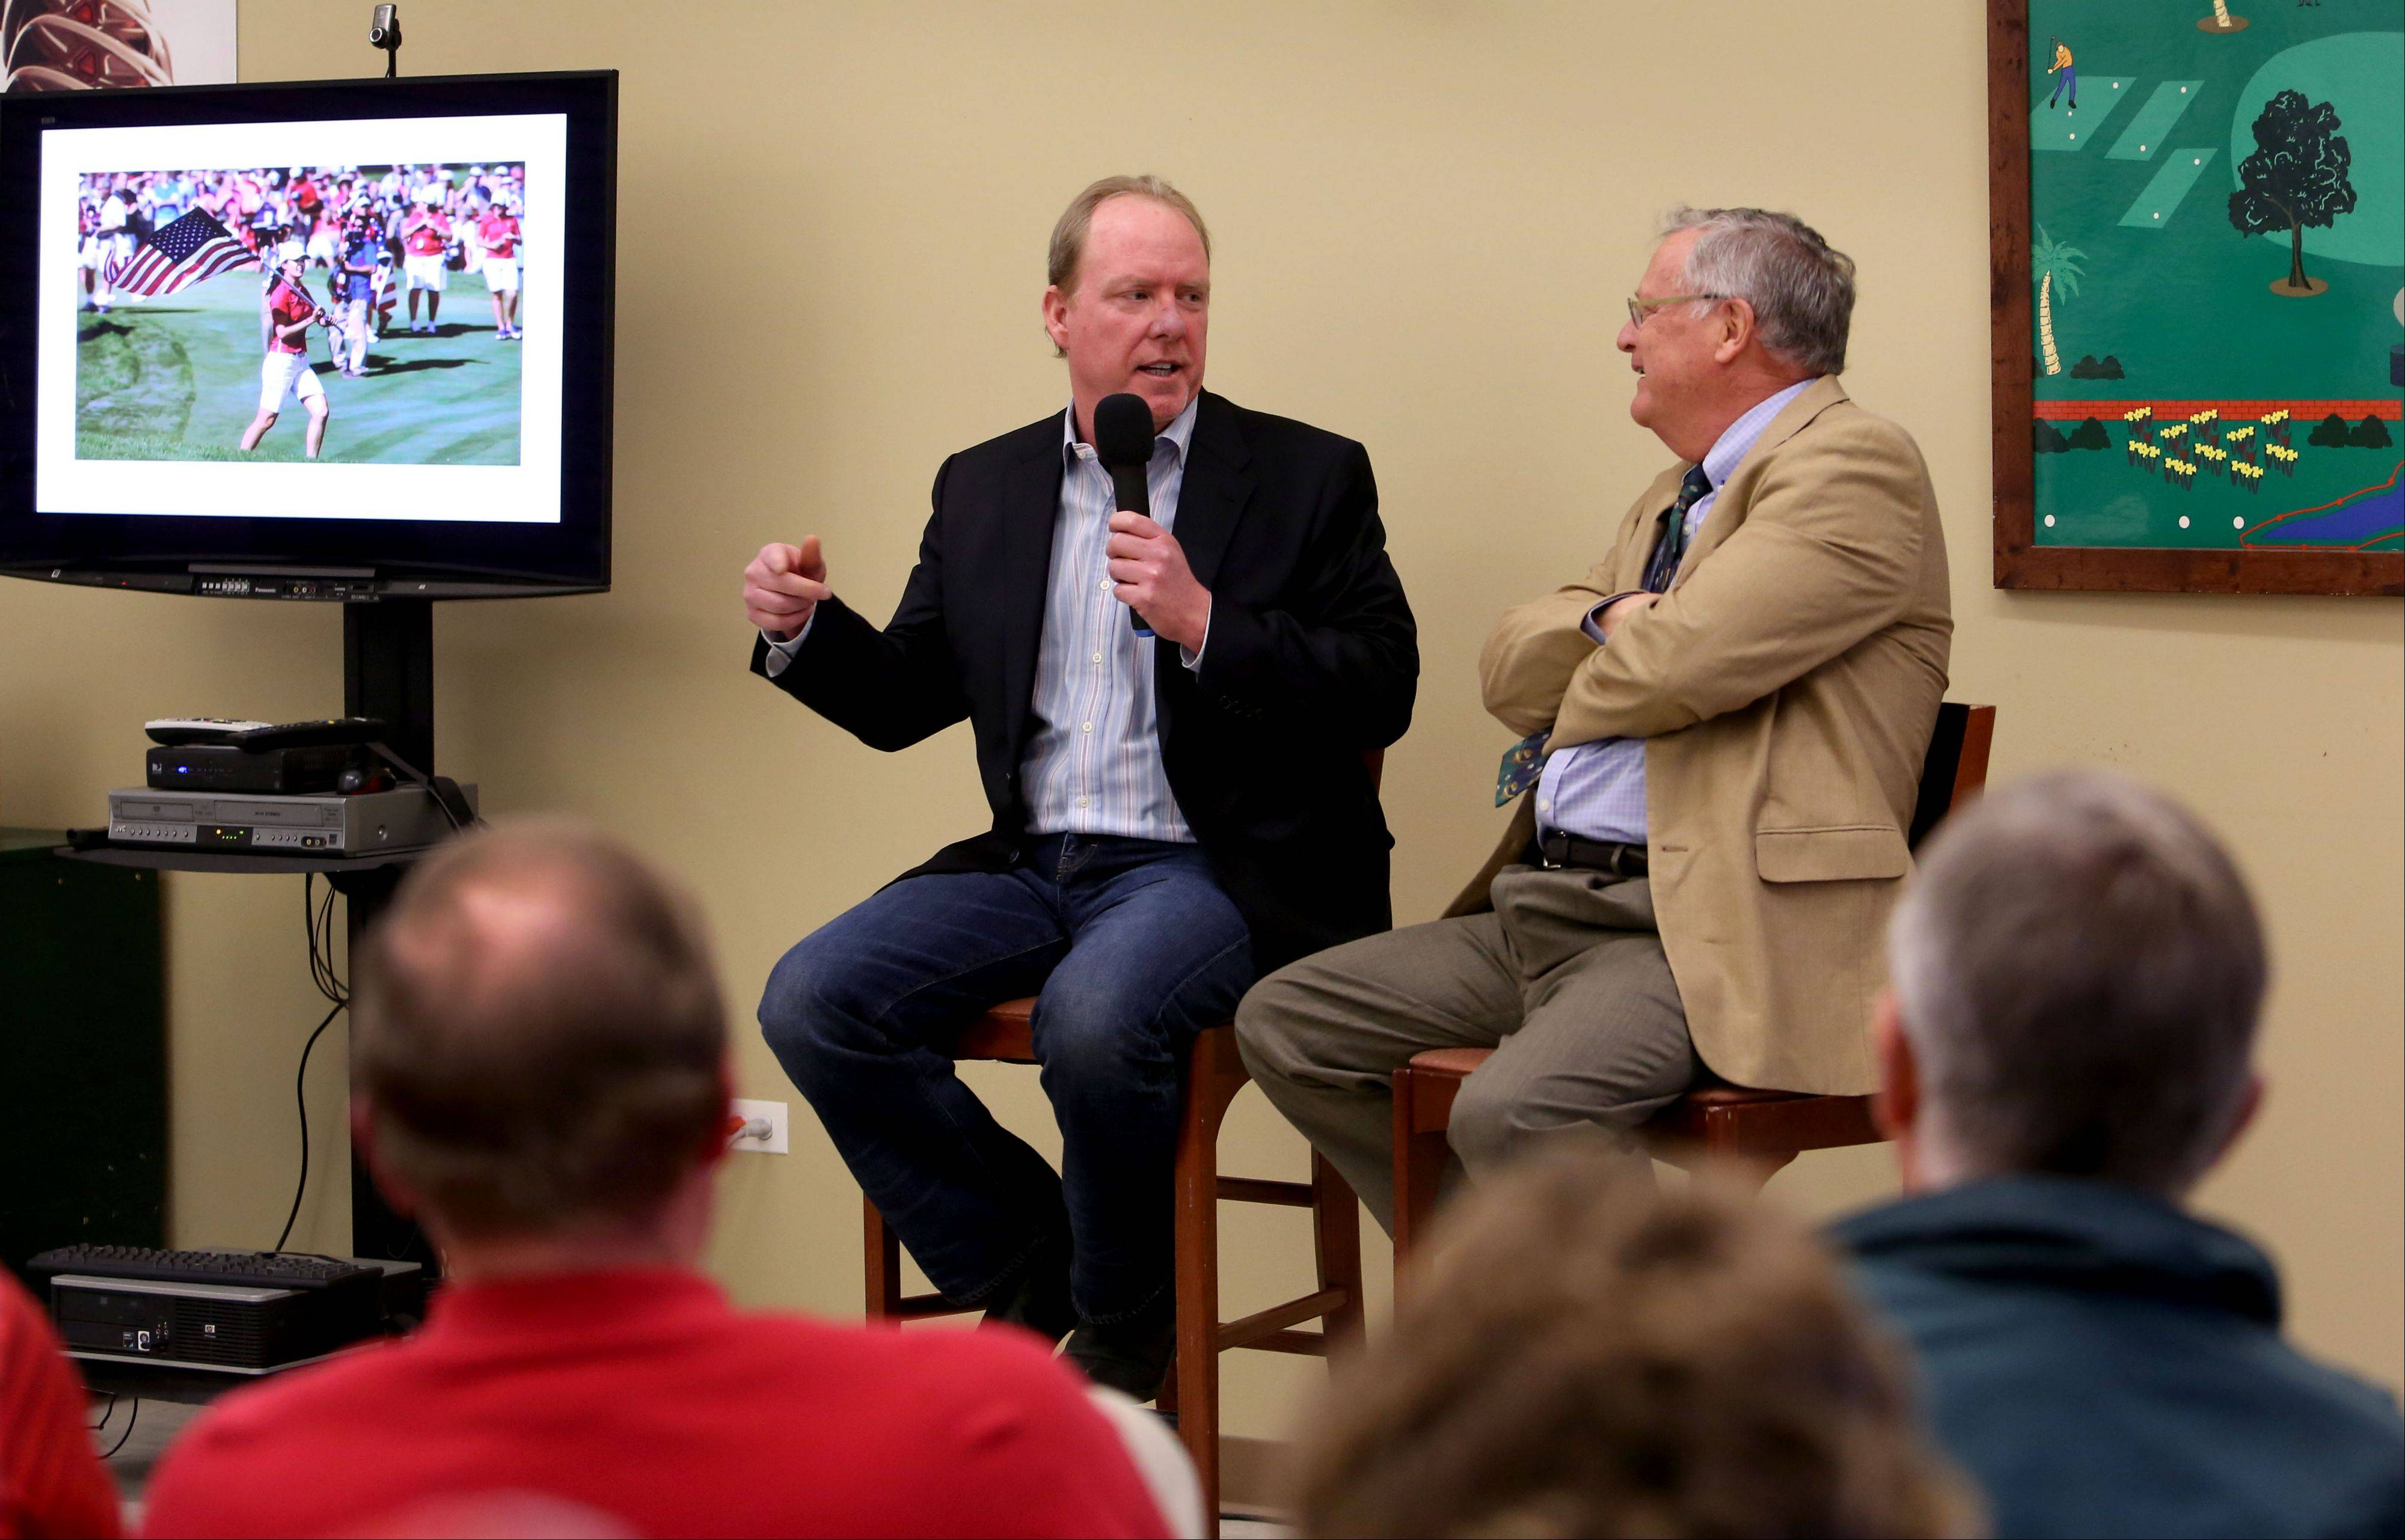 Daily Herald sports writer Mike Spellman, left, and golf columinst Len Ziehm answer questions during the Subscriber Total Access event Monday at the Cantigny Golf Academy at Cantigny Park in Wheaton.